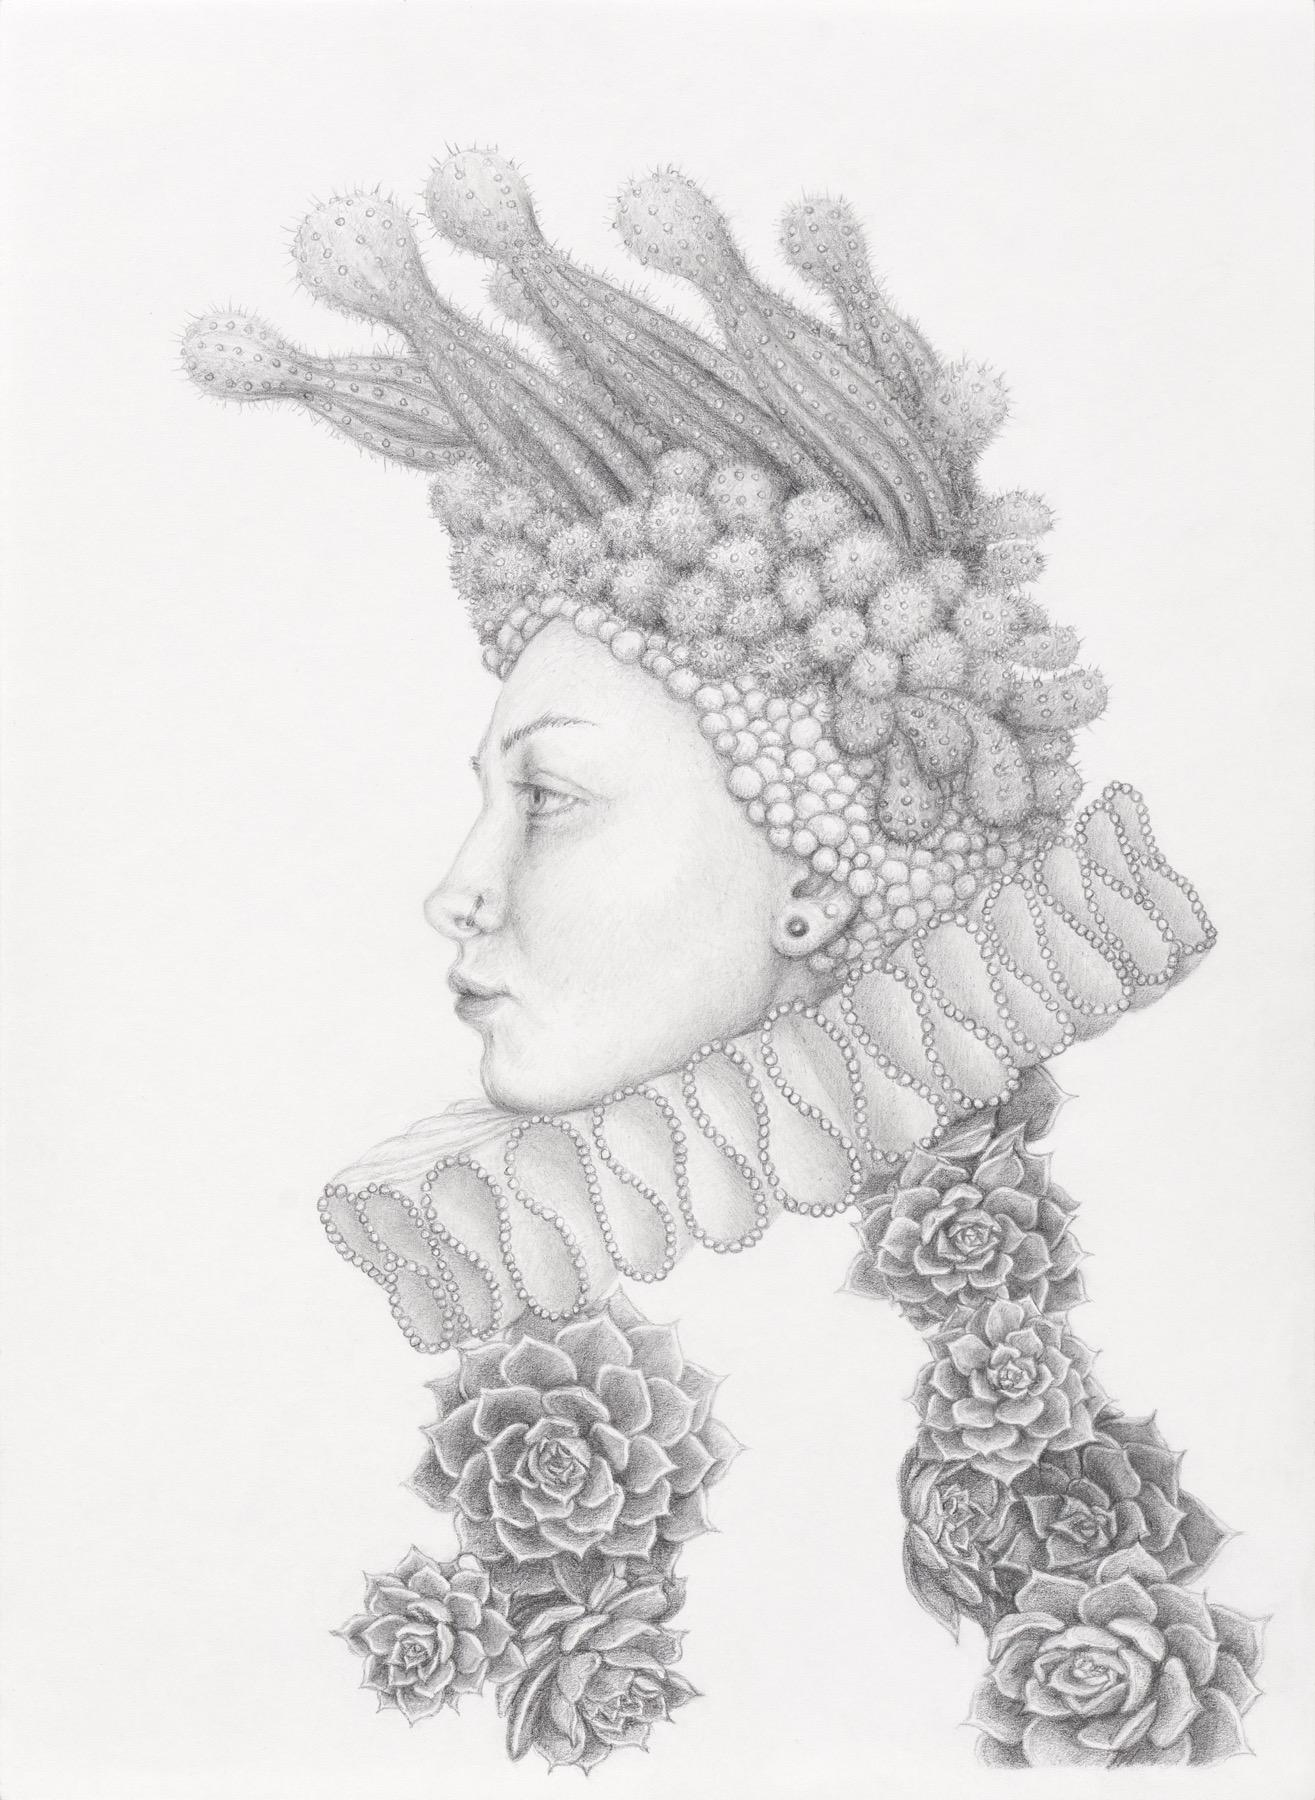 Infanta Futura- graphite pencil drawing - woman with cactus and succulents